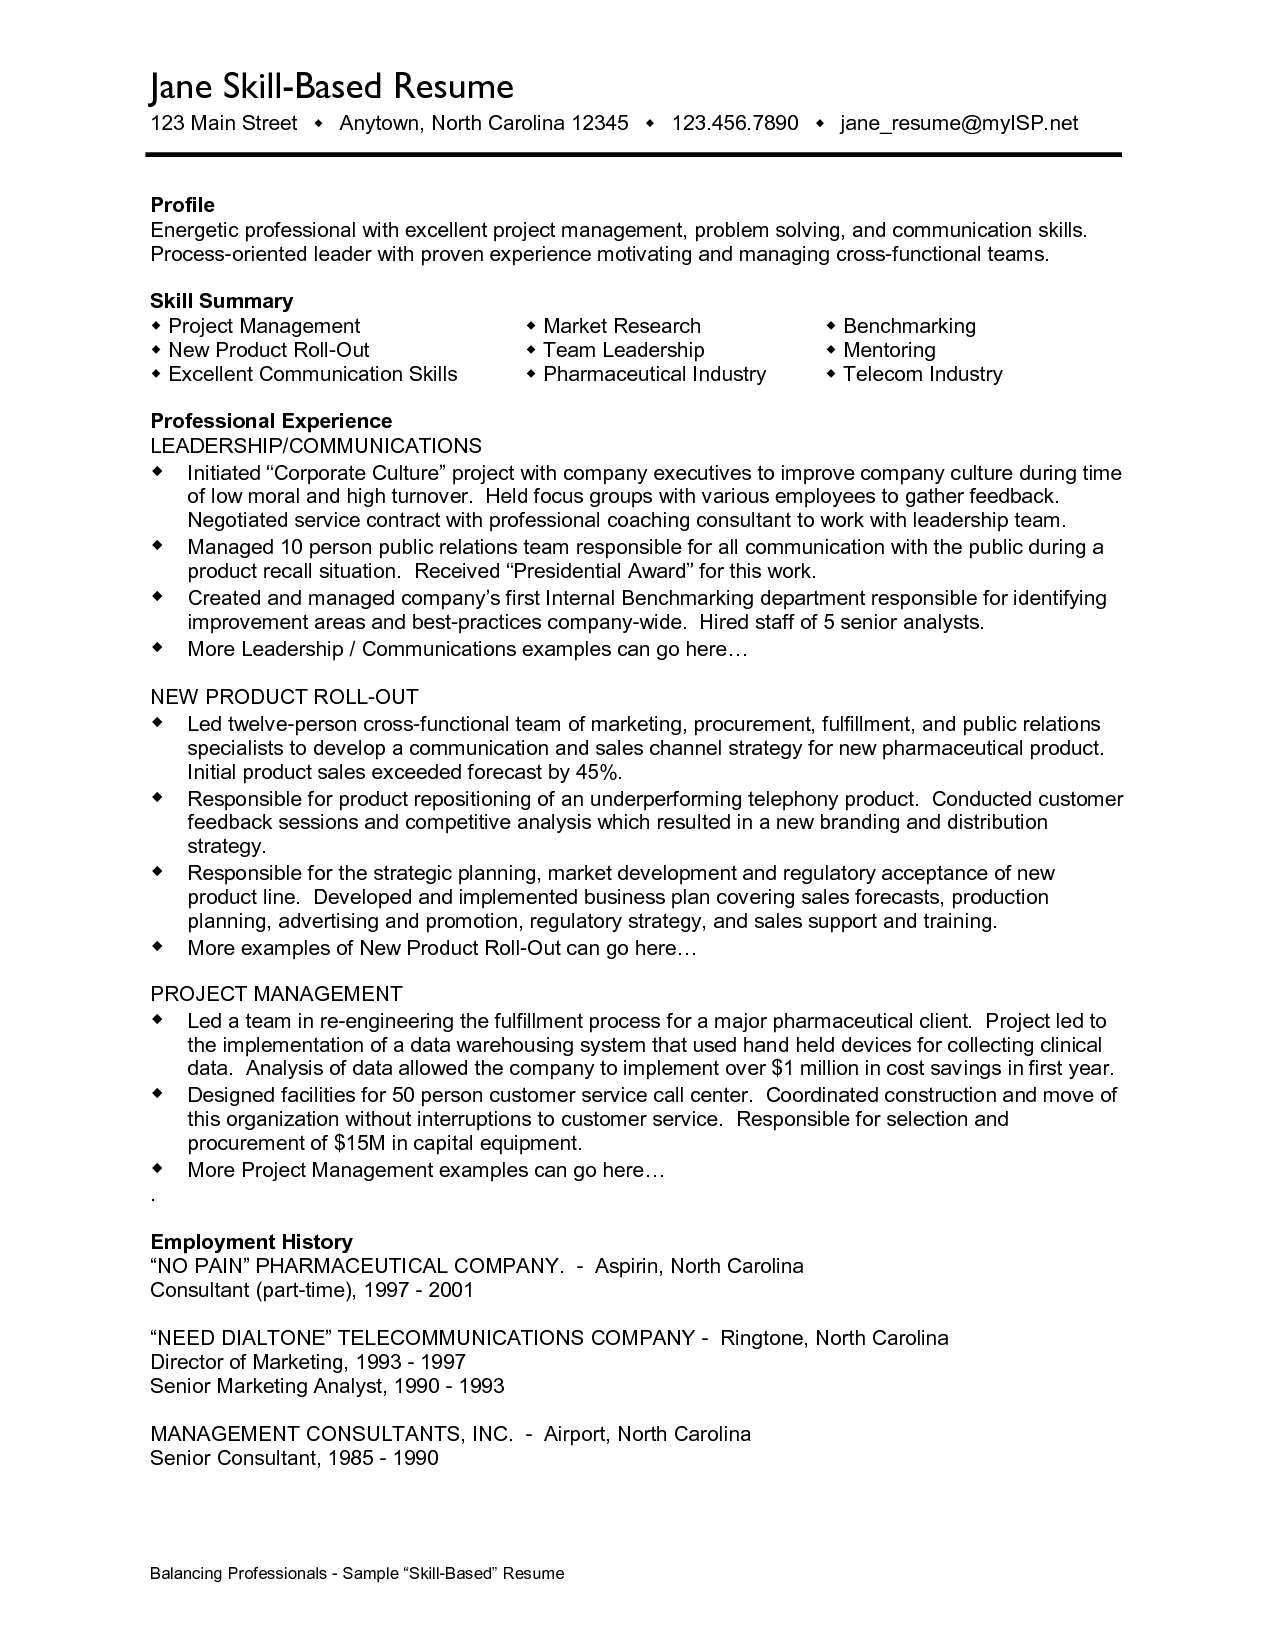 example of job skills in resume Template – Resume Skills Example